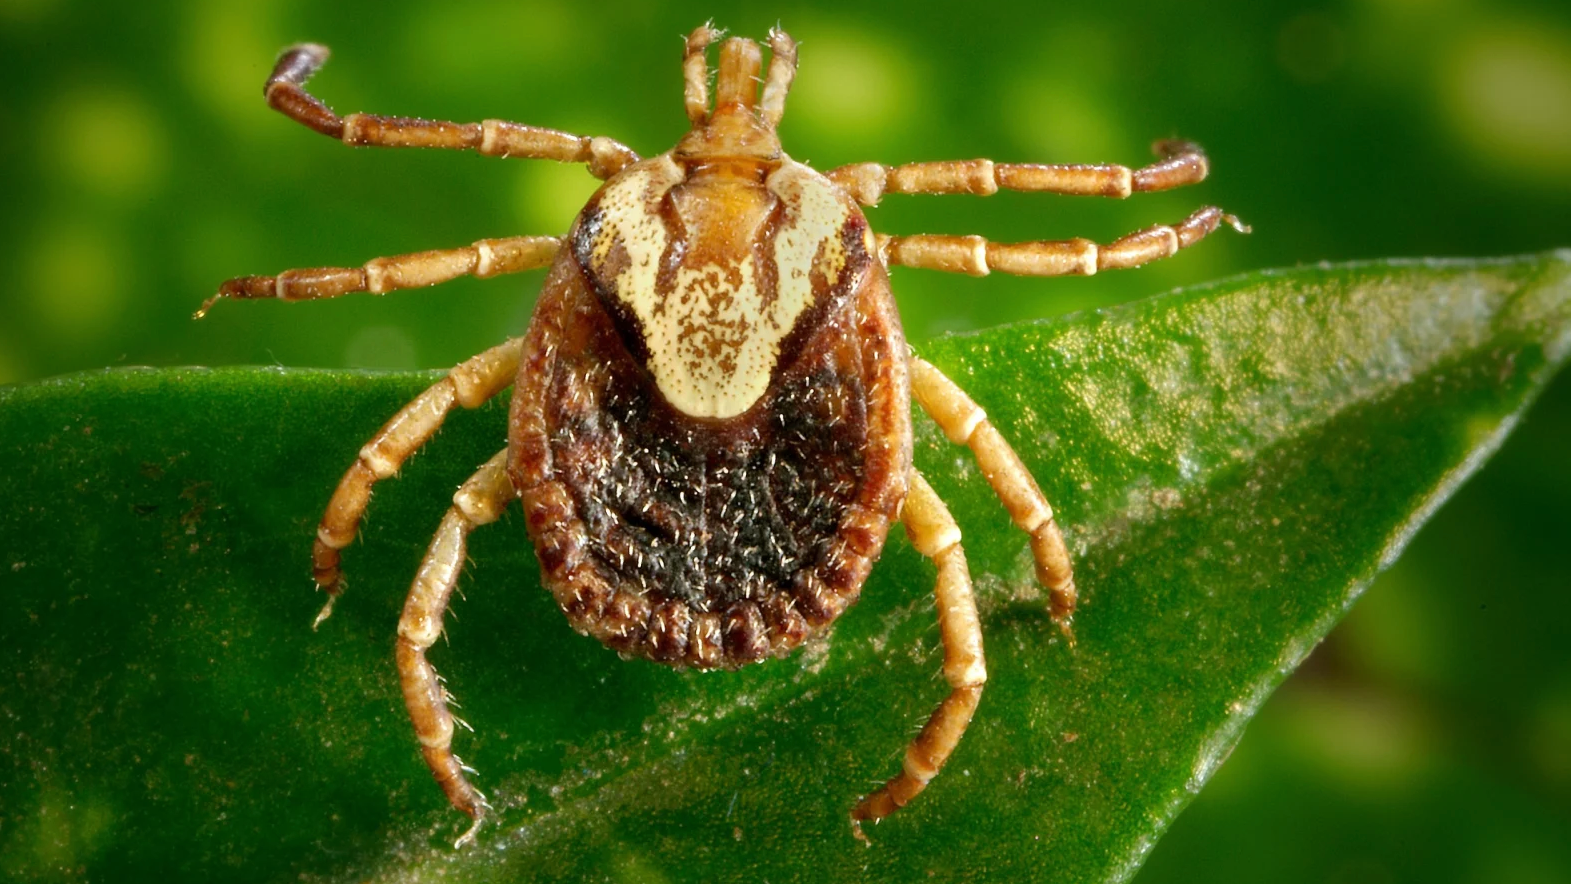 Strange Buzzing In 9-Year-Old Boy's Ear Was Actually A Tick Embedded In His Eardrum